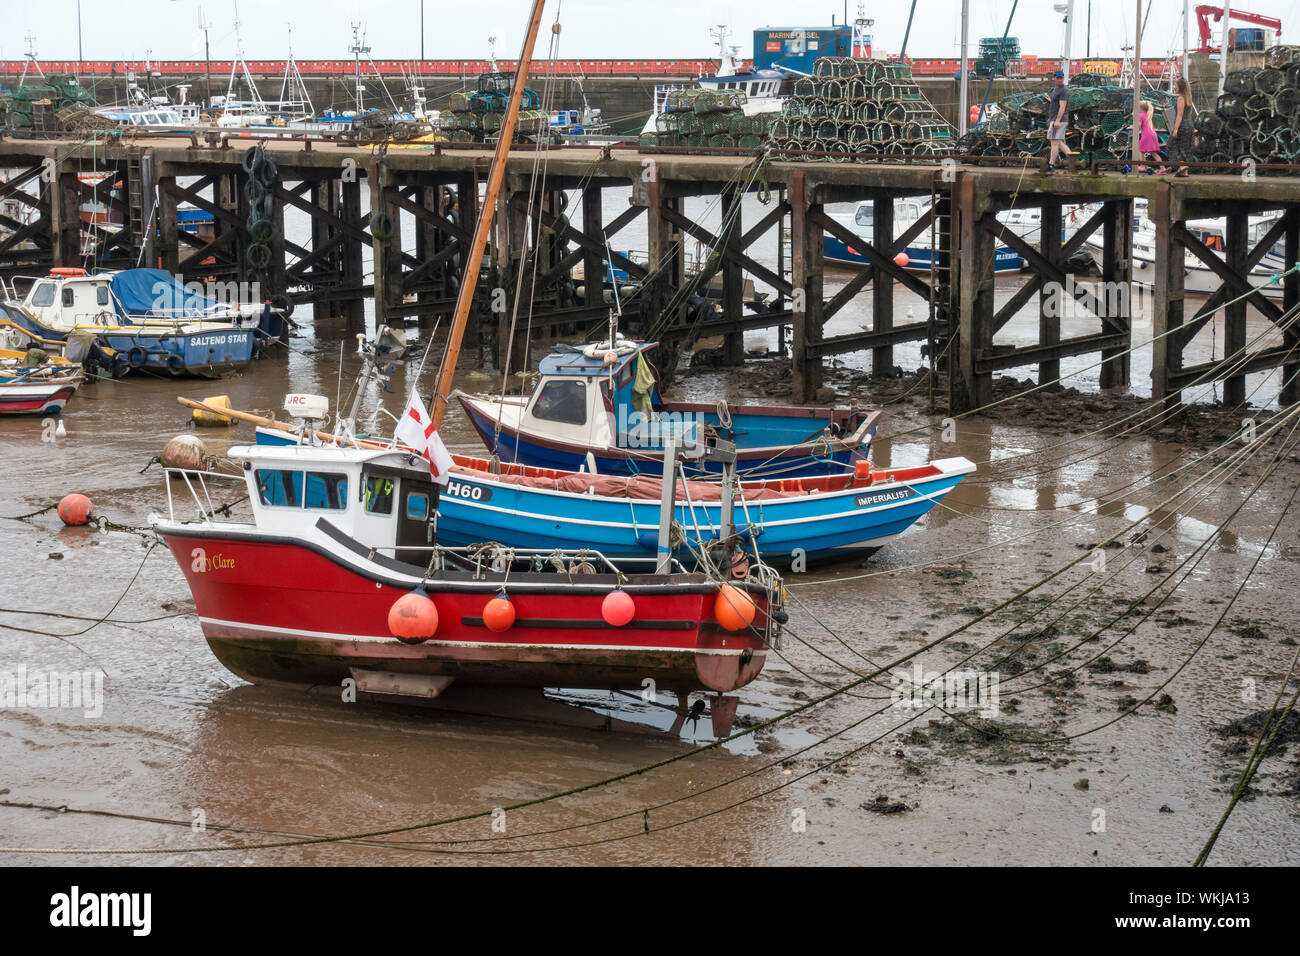 Fishing boats resting on mud at low tide Bridlington harbour East Yorkshire 2019 Stock Photo